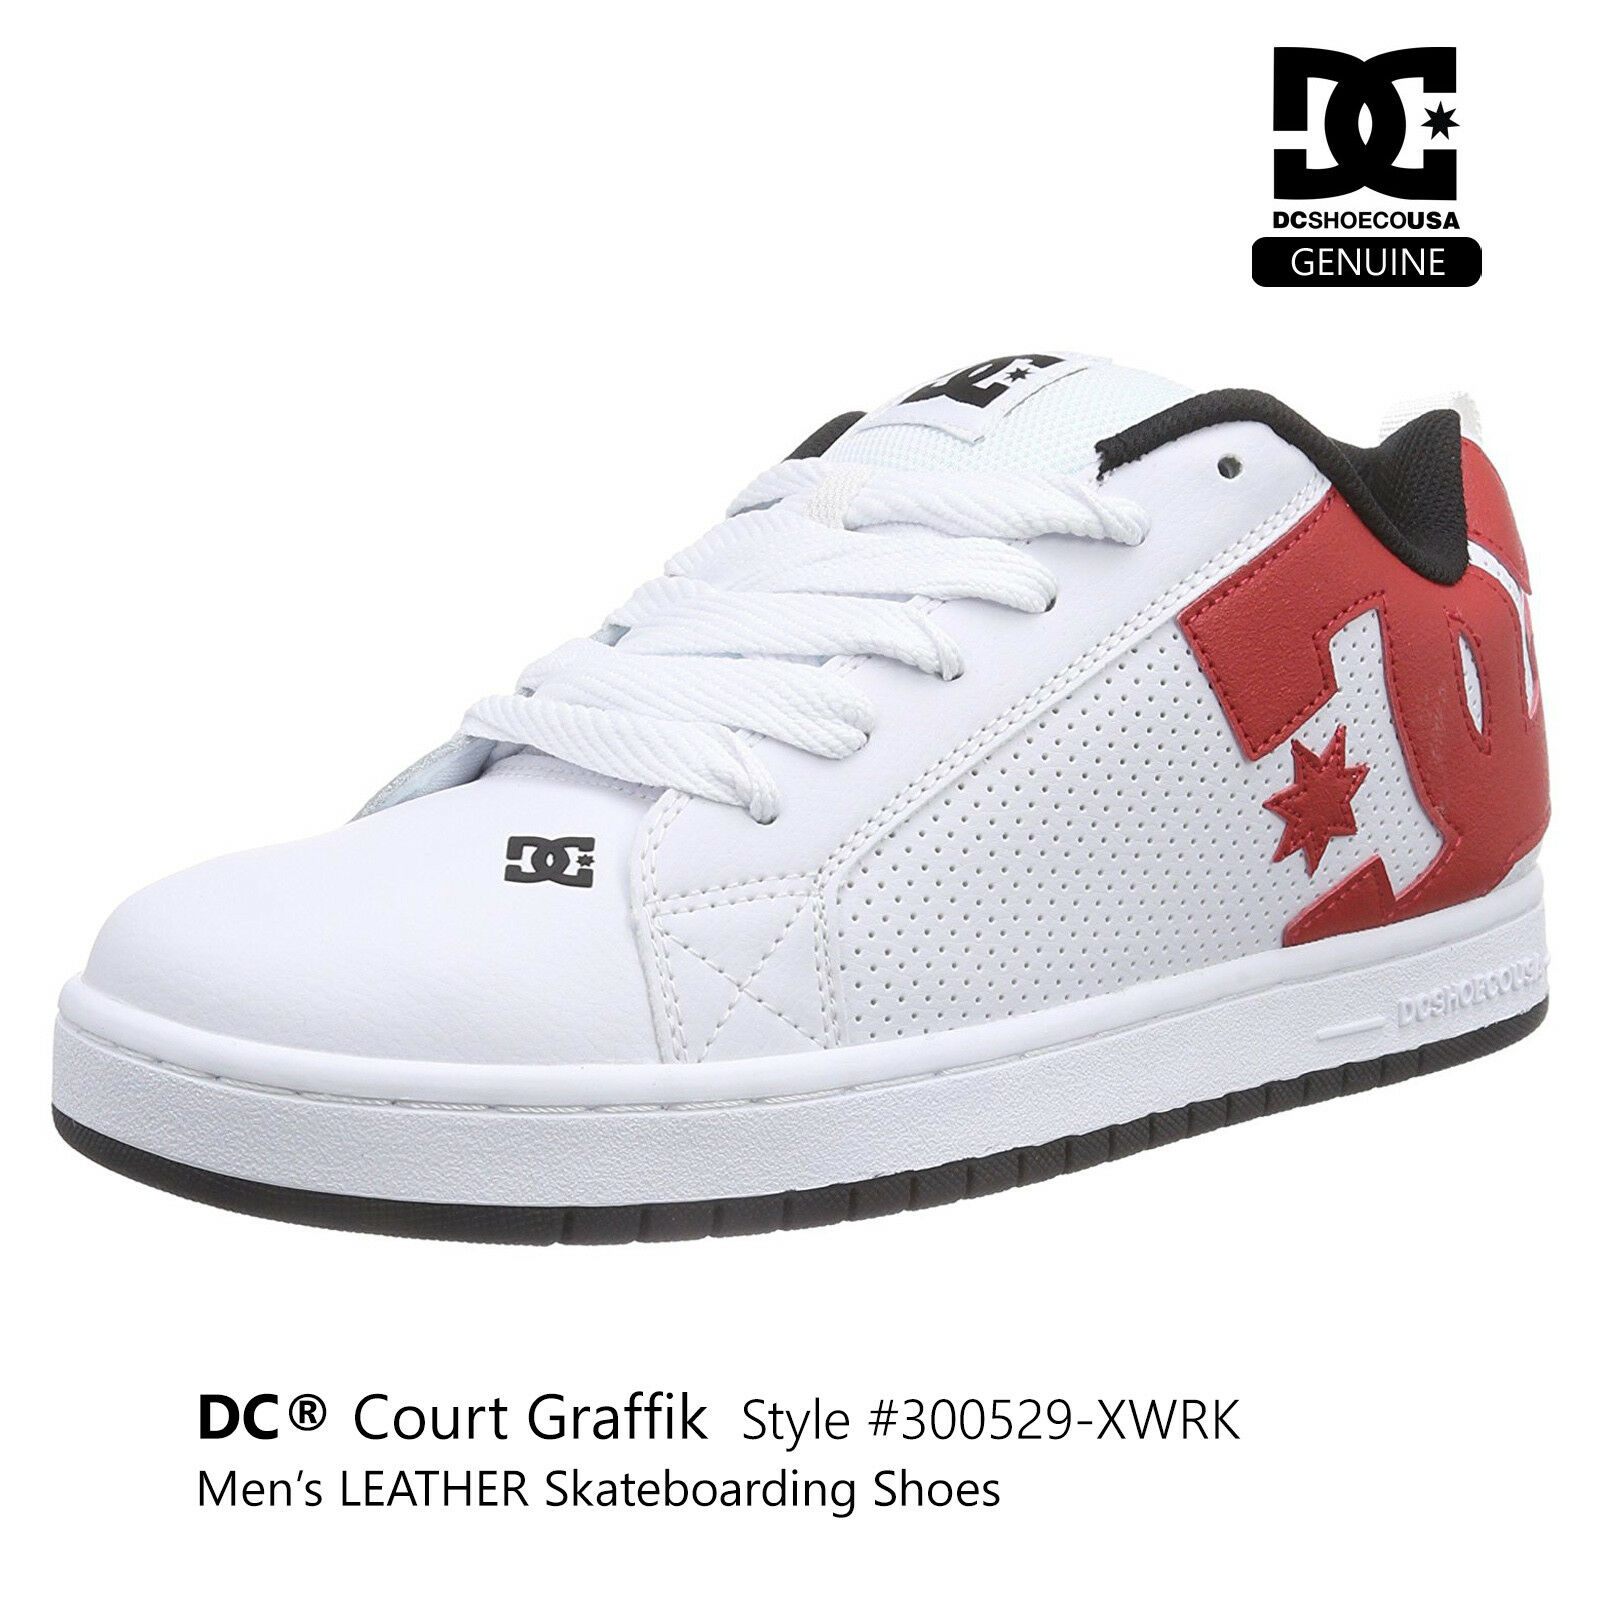 DC Court  Graffik Men's S  shoes S boarding White with Red Logo 300529-XWRK  on sale 70% off